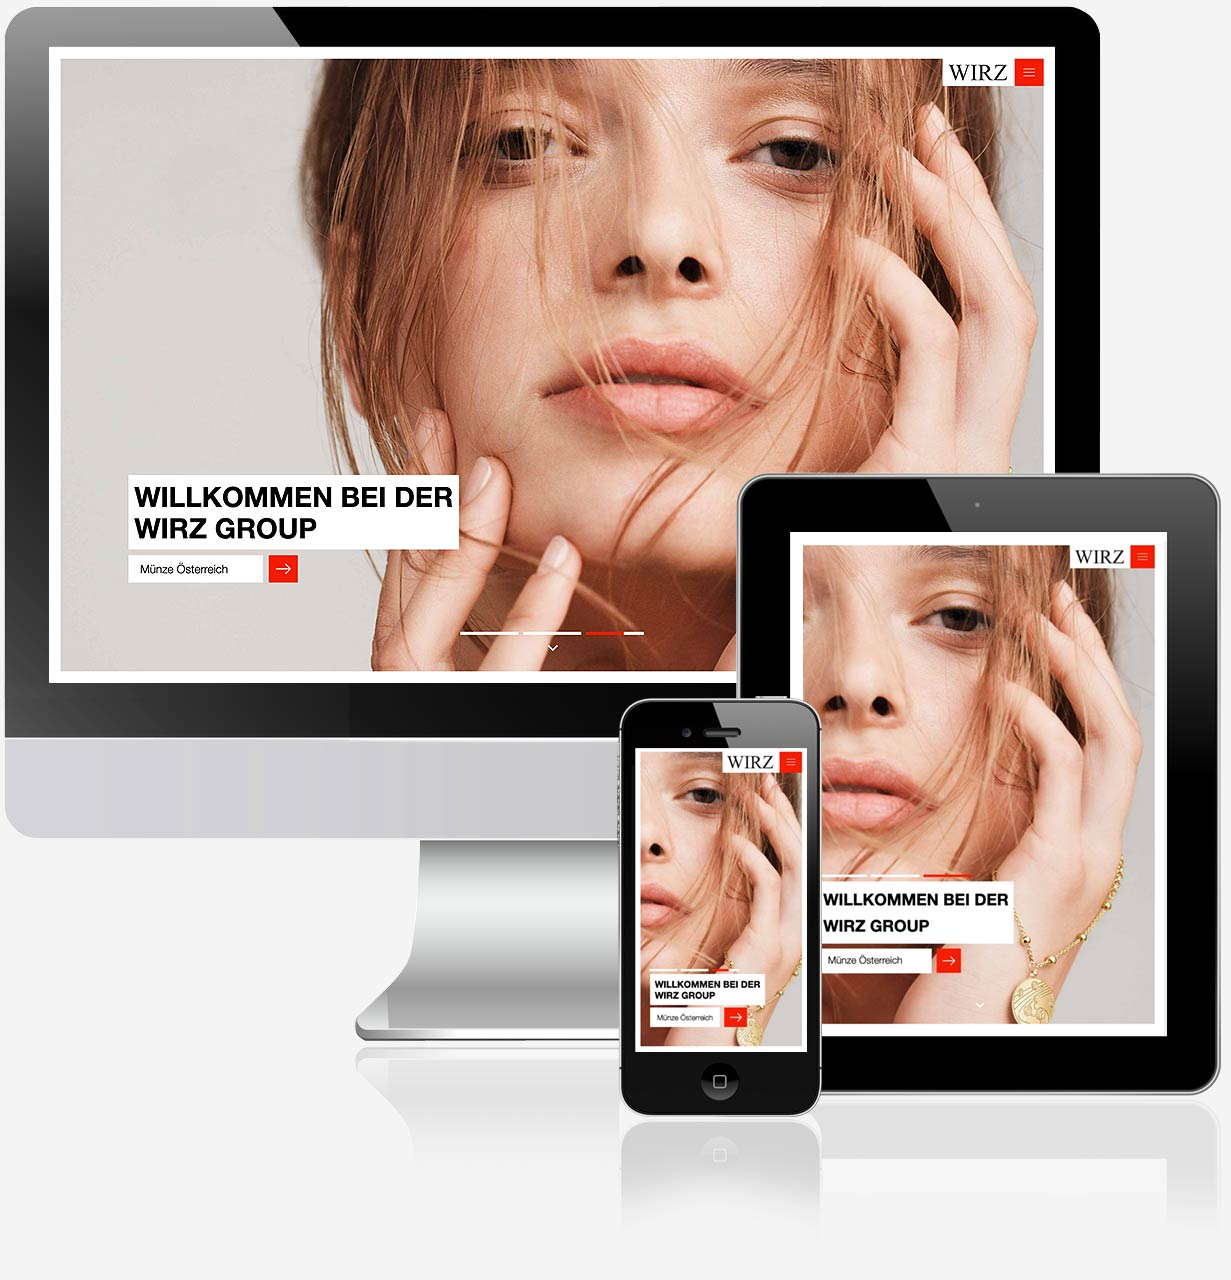 Wirz Werbeagentur Website C21 new media design Online Agentur Digitalagentur Webagentur Wien